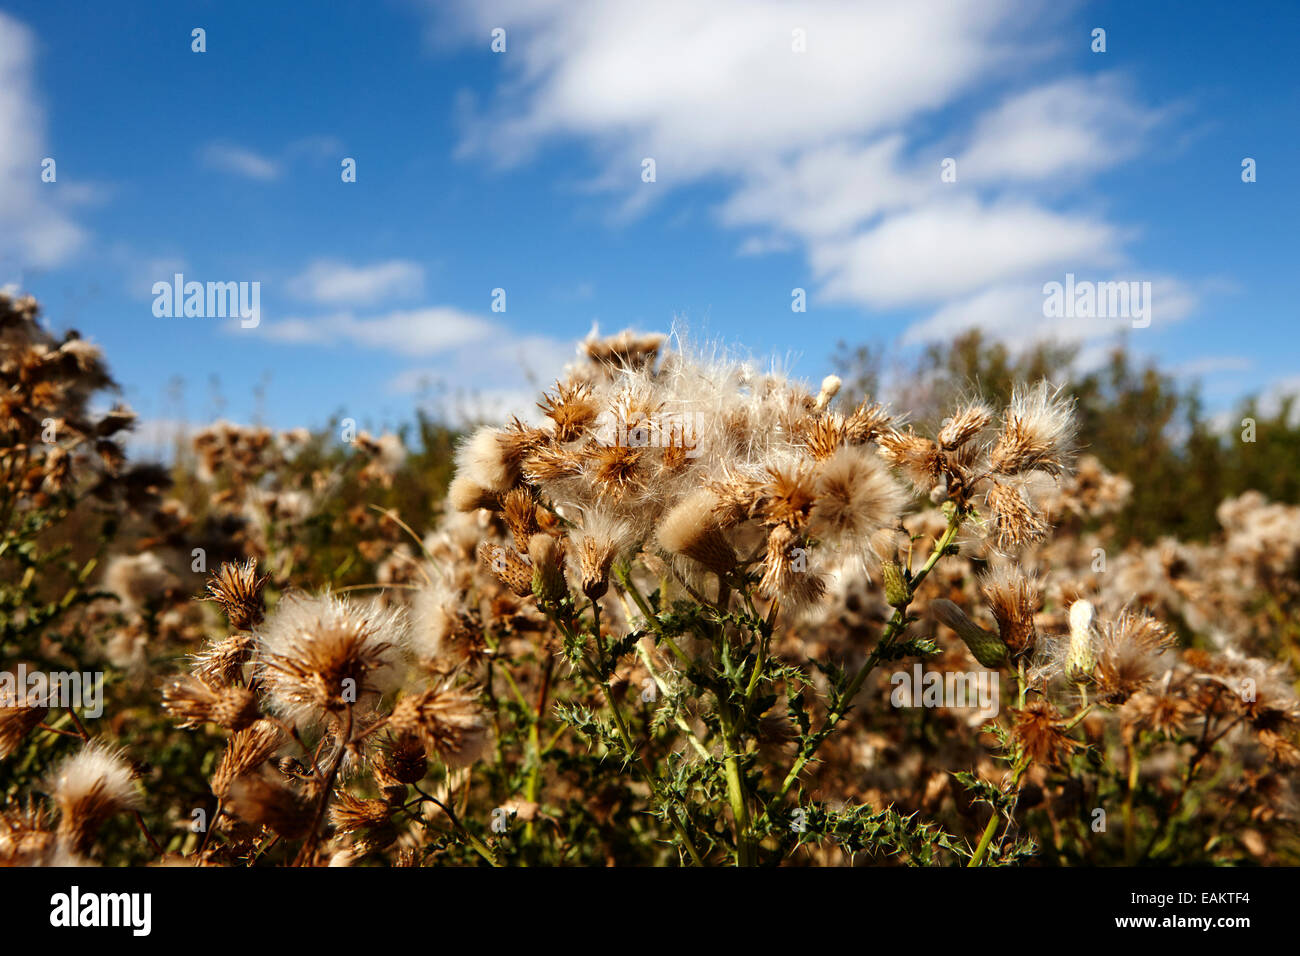 seeding canadian thistle plants Saskatchewan Canada - Stock Image